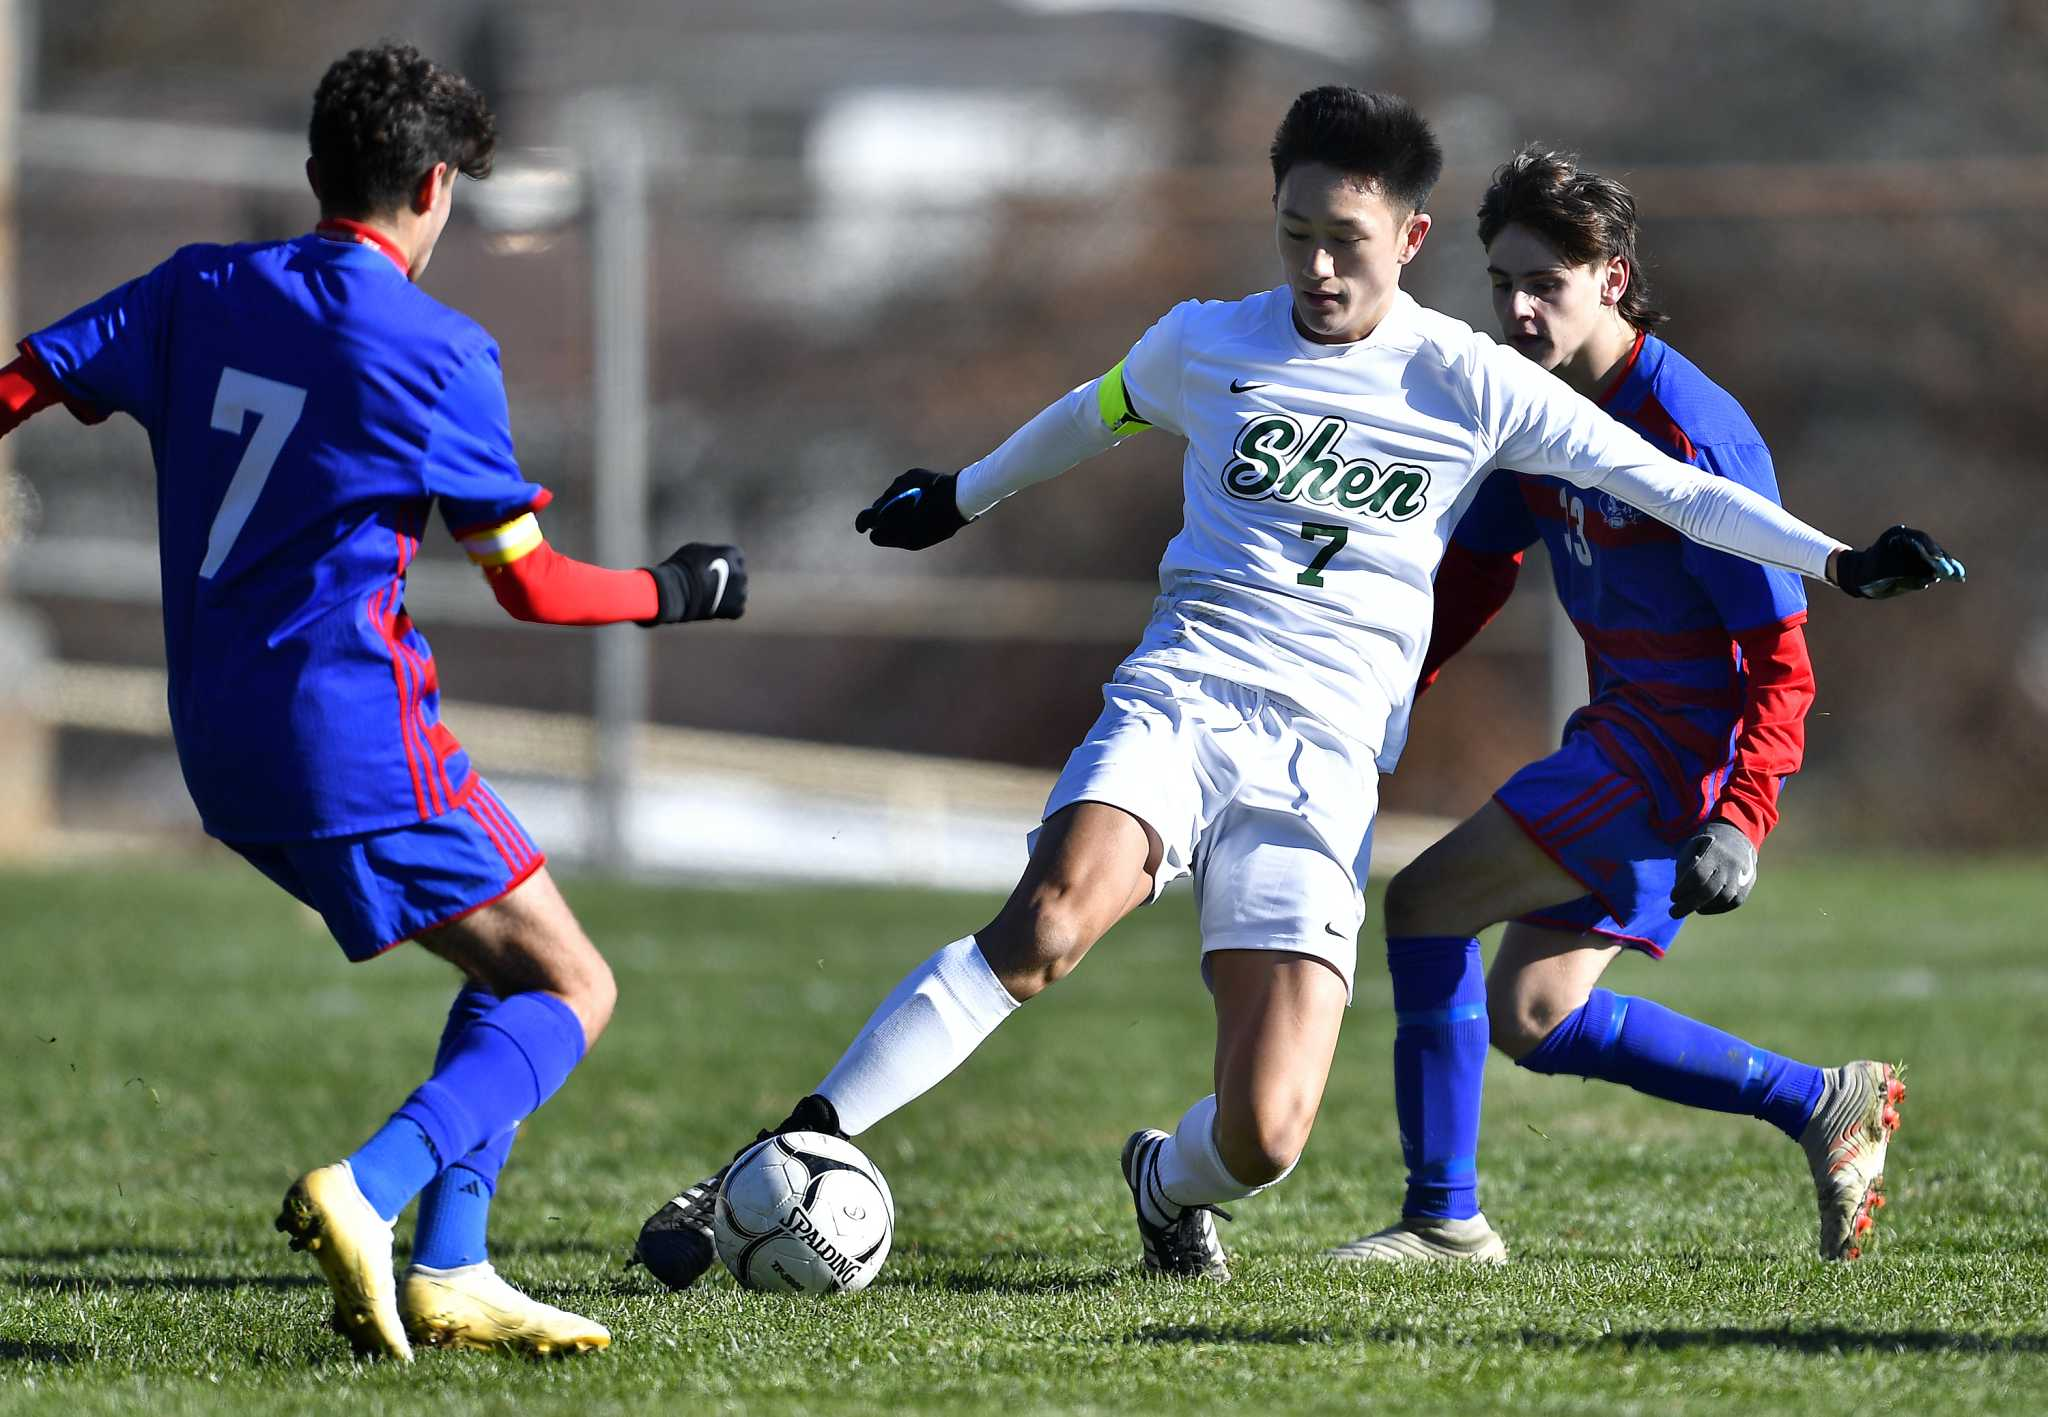 Shenendehowa boys' soccer loses in double overtime